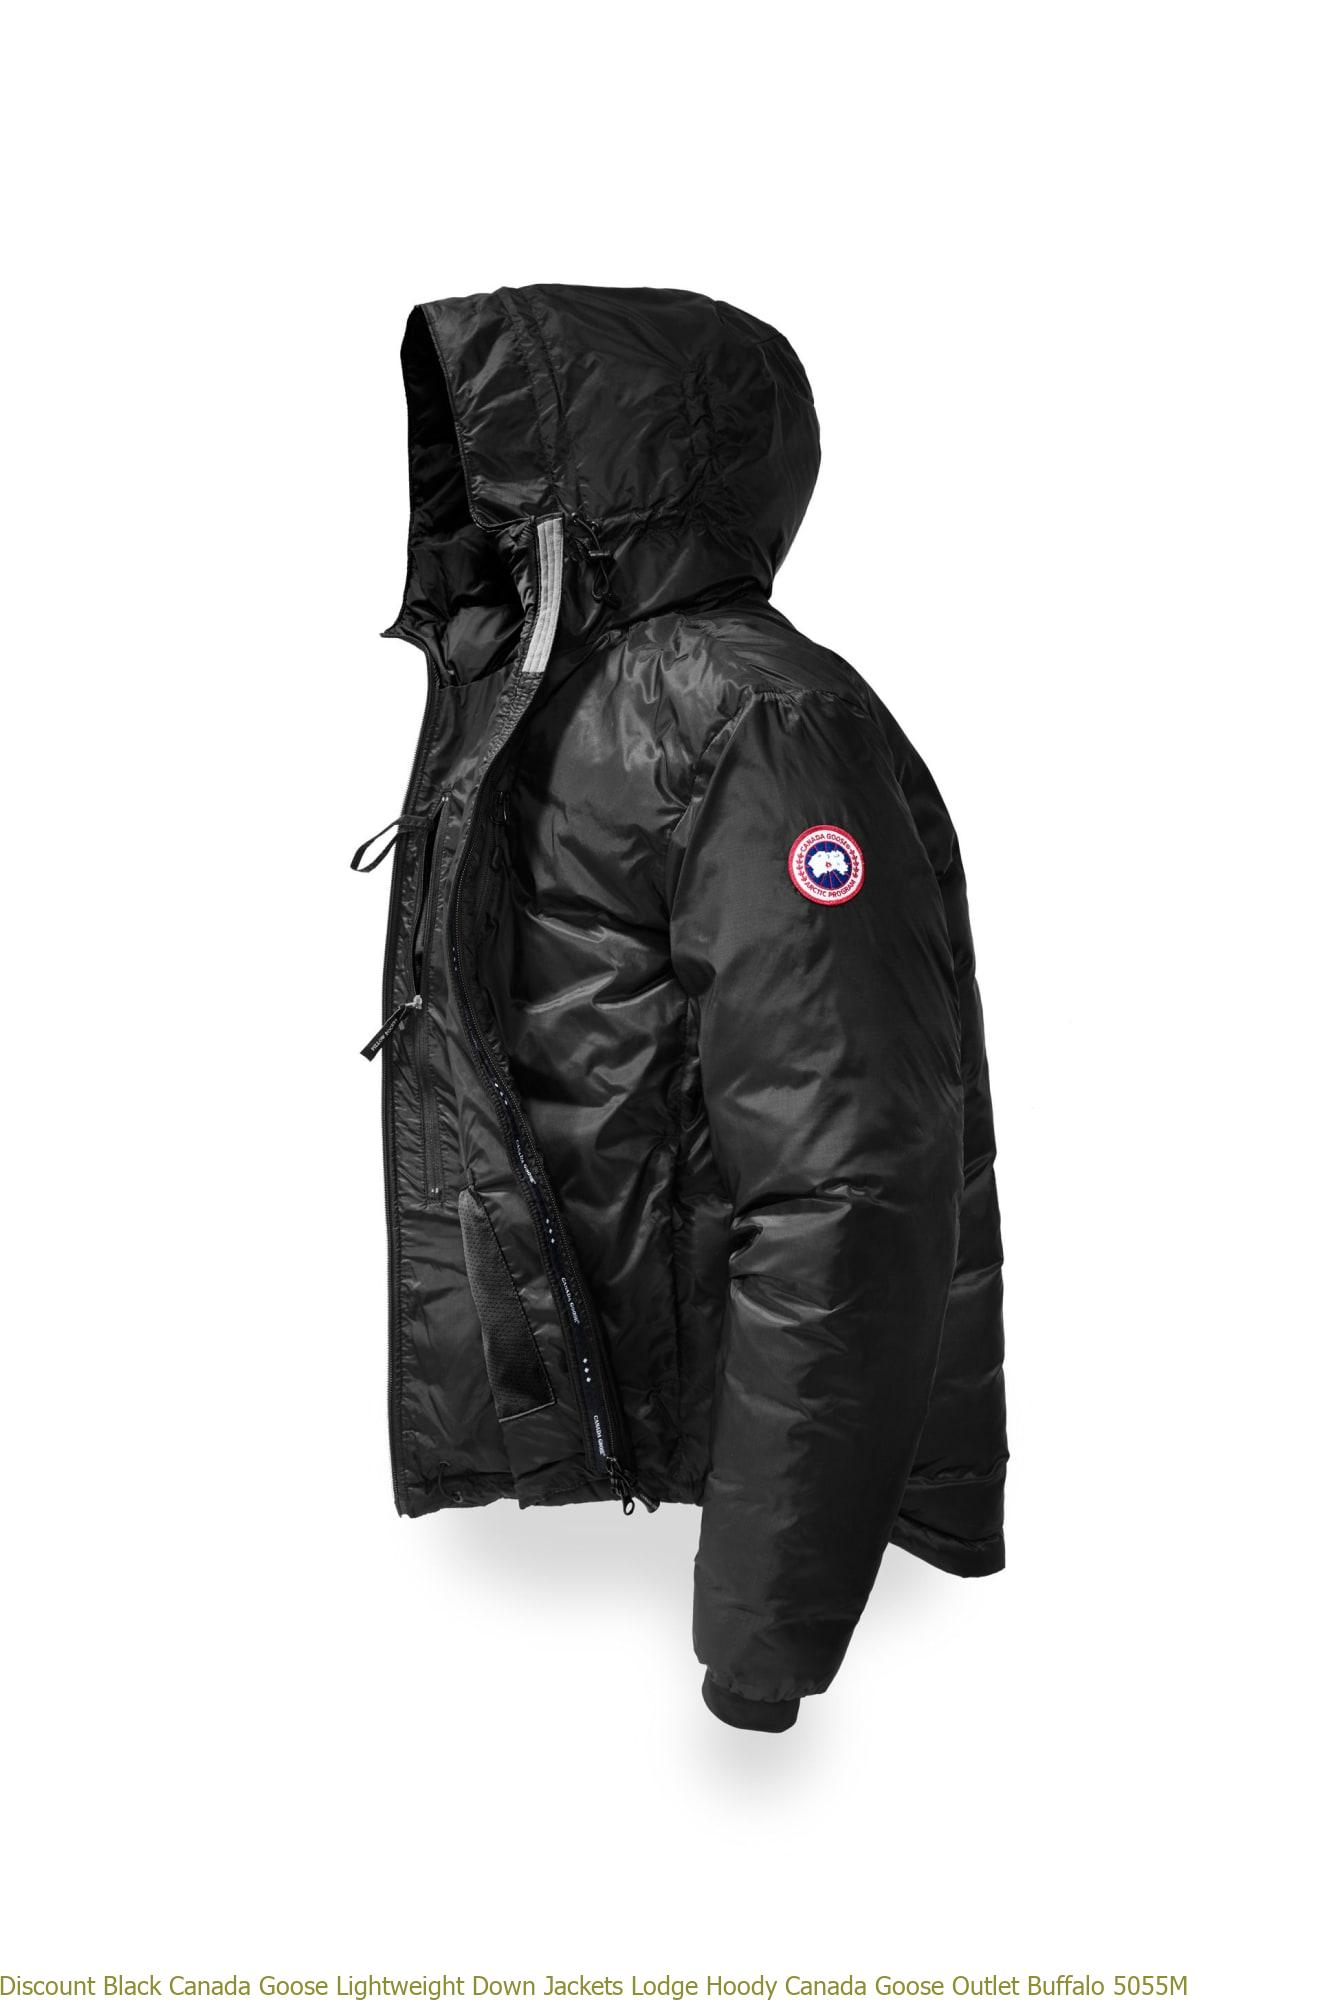 Discount Black Canada Goose Lightweight Down Jackets Lodge